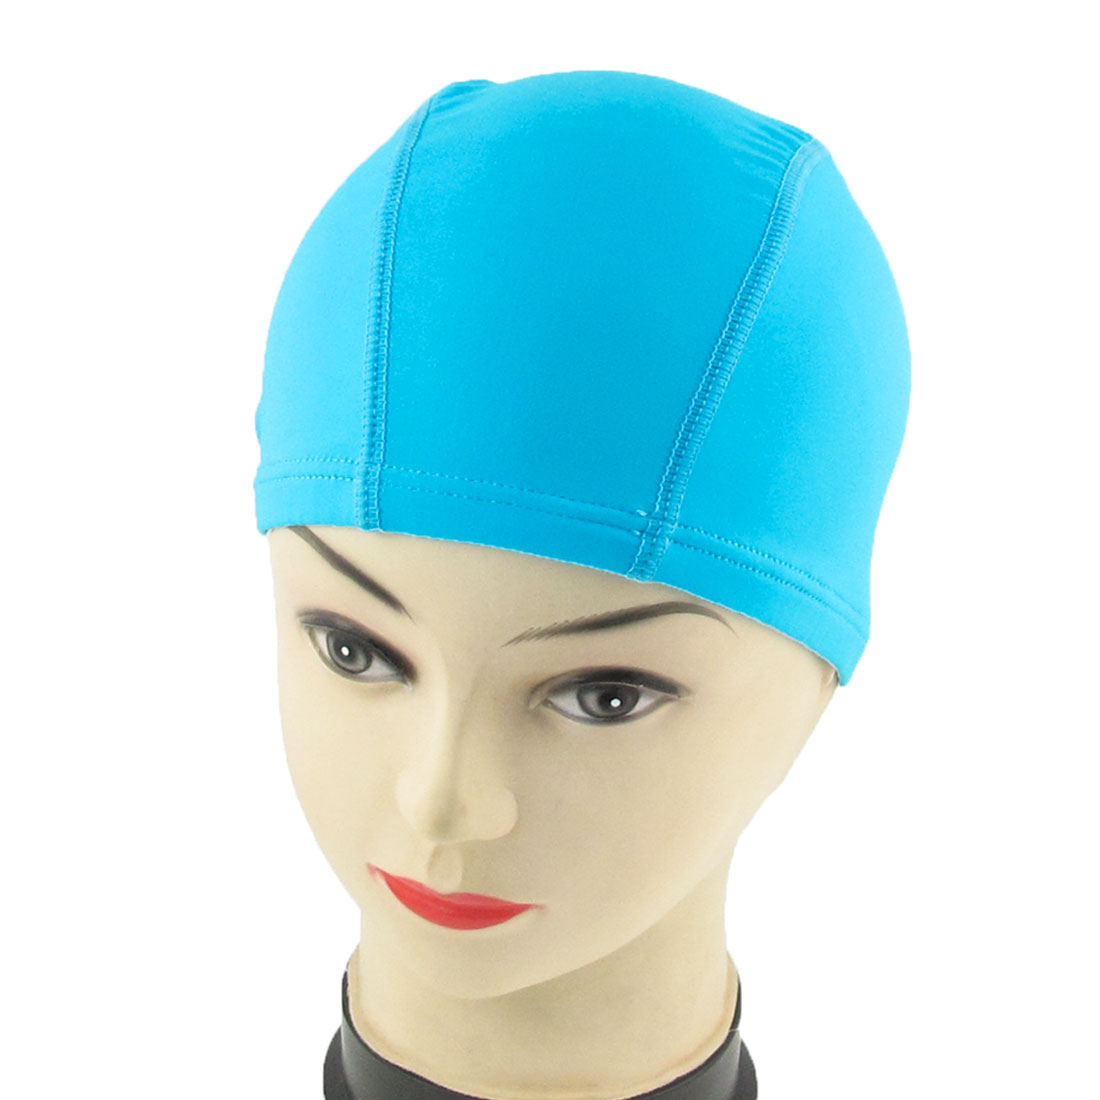 Adult Elastic Fiber Cotton Cloth Swimming Swimmer Cap Hat Teal Blue